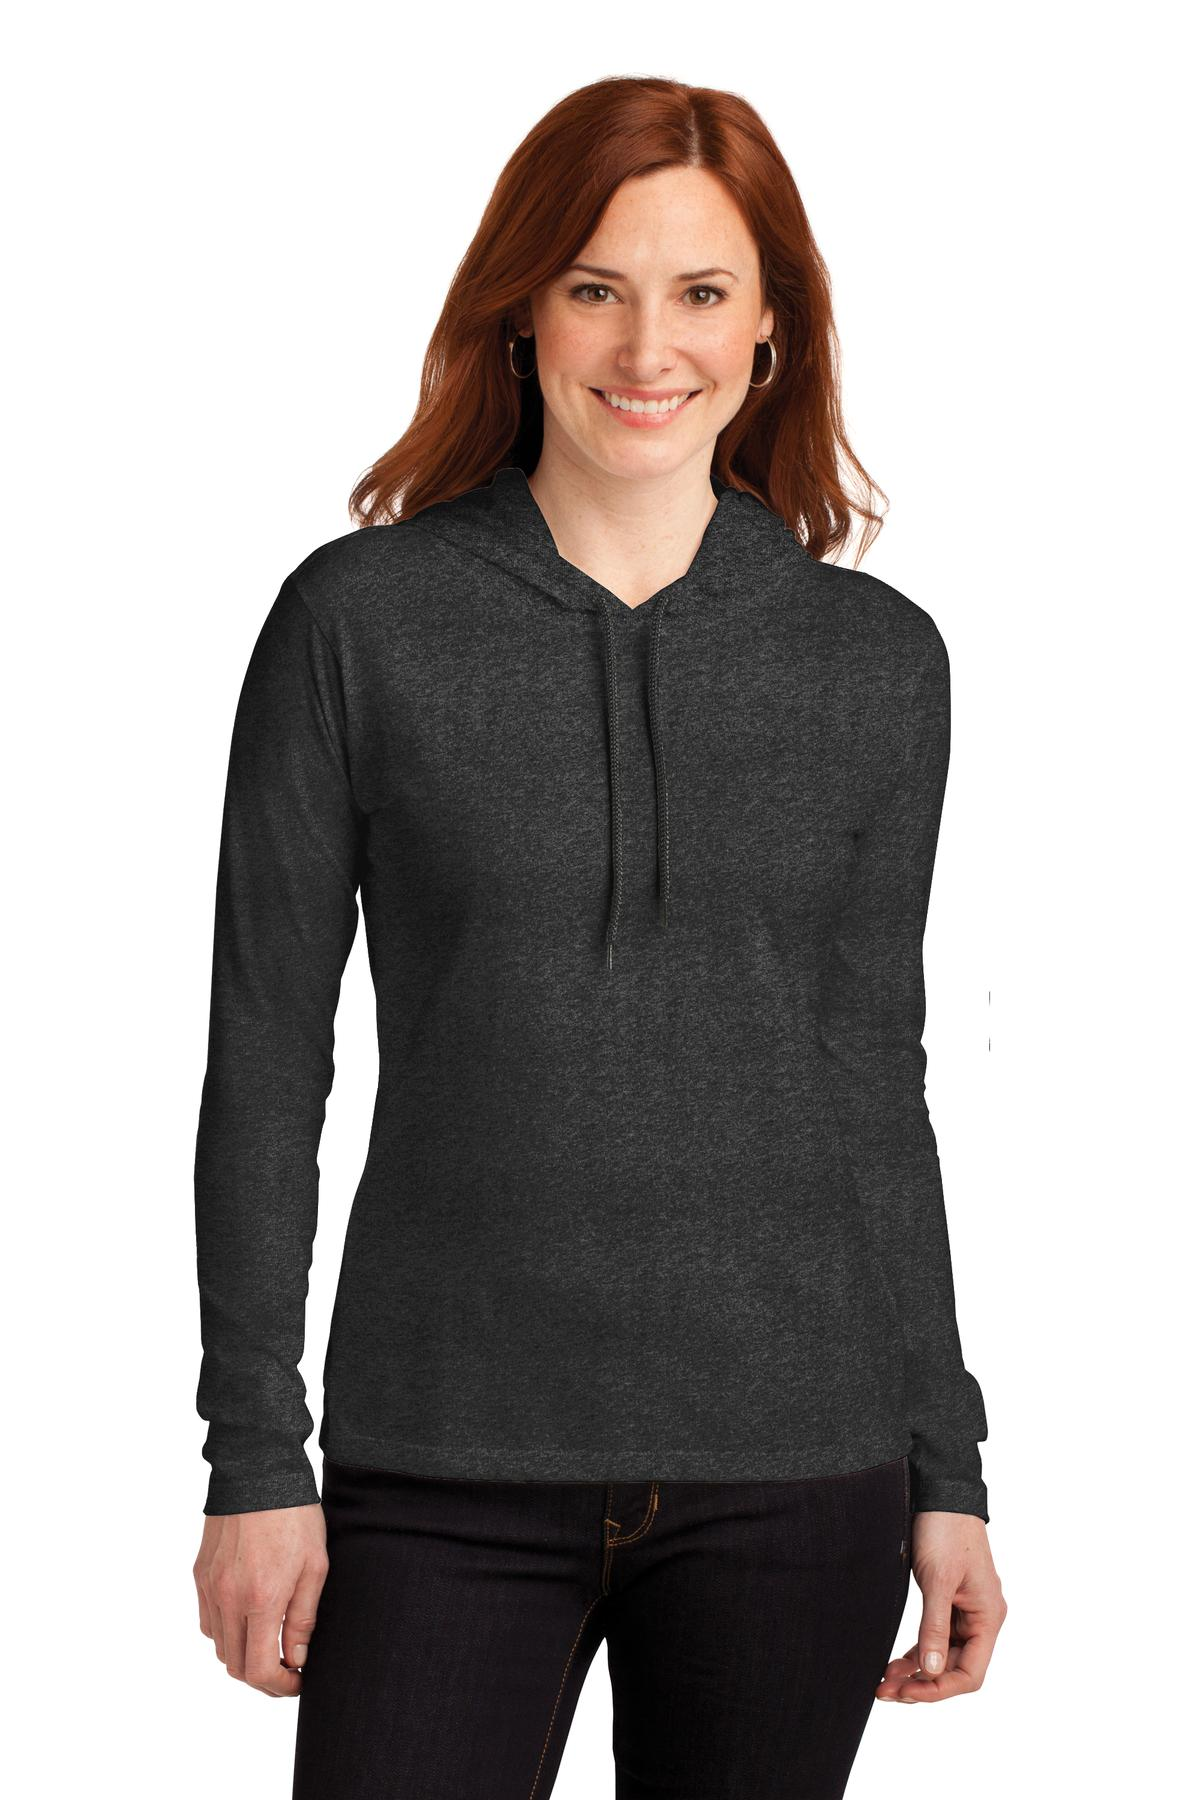 Anvil ®  Ladies 100% Combed Ring Spun Cotton Long Sleeve Hooded T-Shirt. 887L - Heather Dark Grey/ Dark Grey